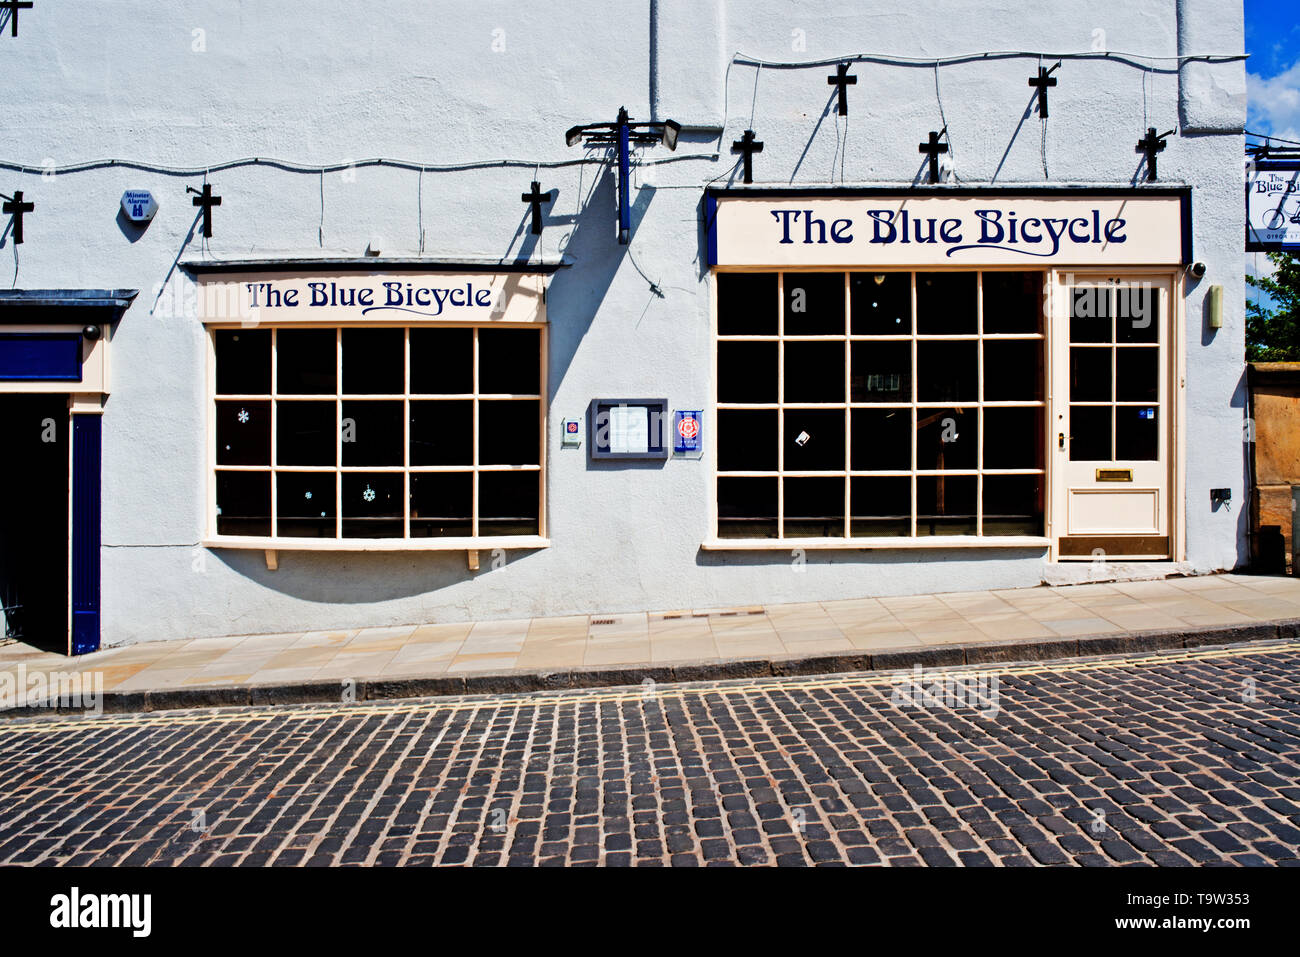 The Blue Bicycle, Fossgate, York, England - Stock Image